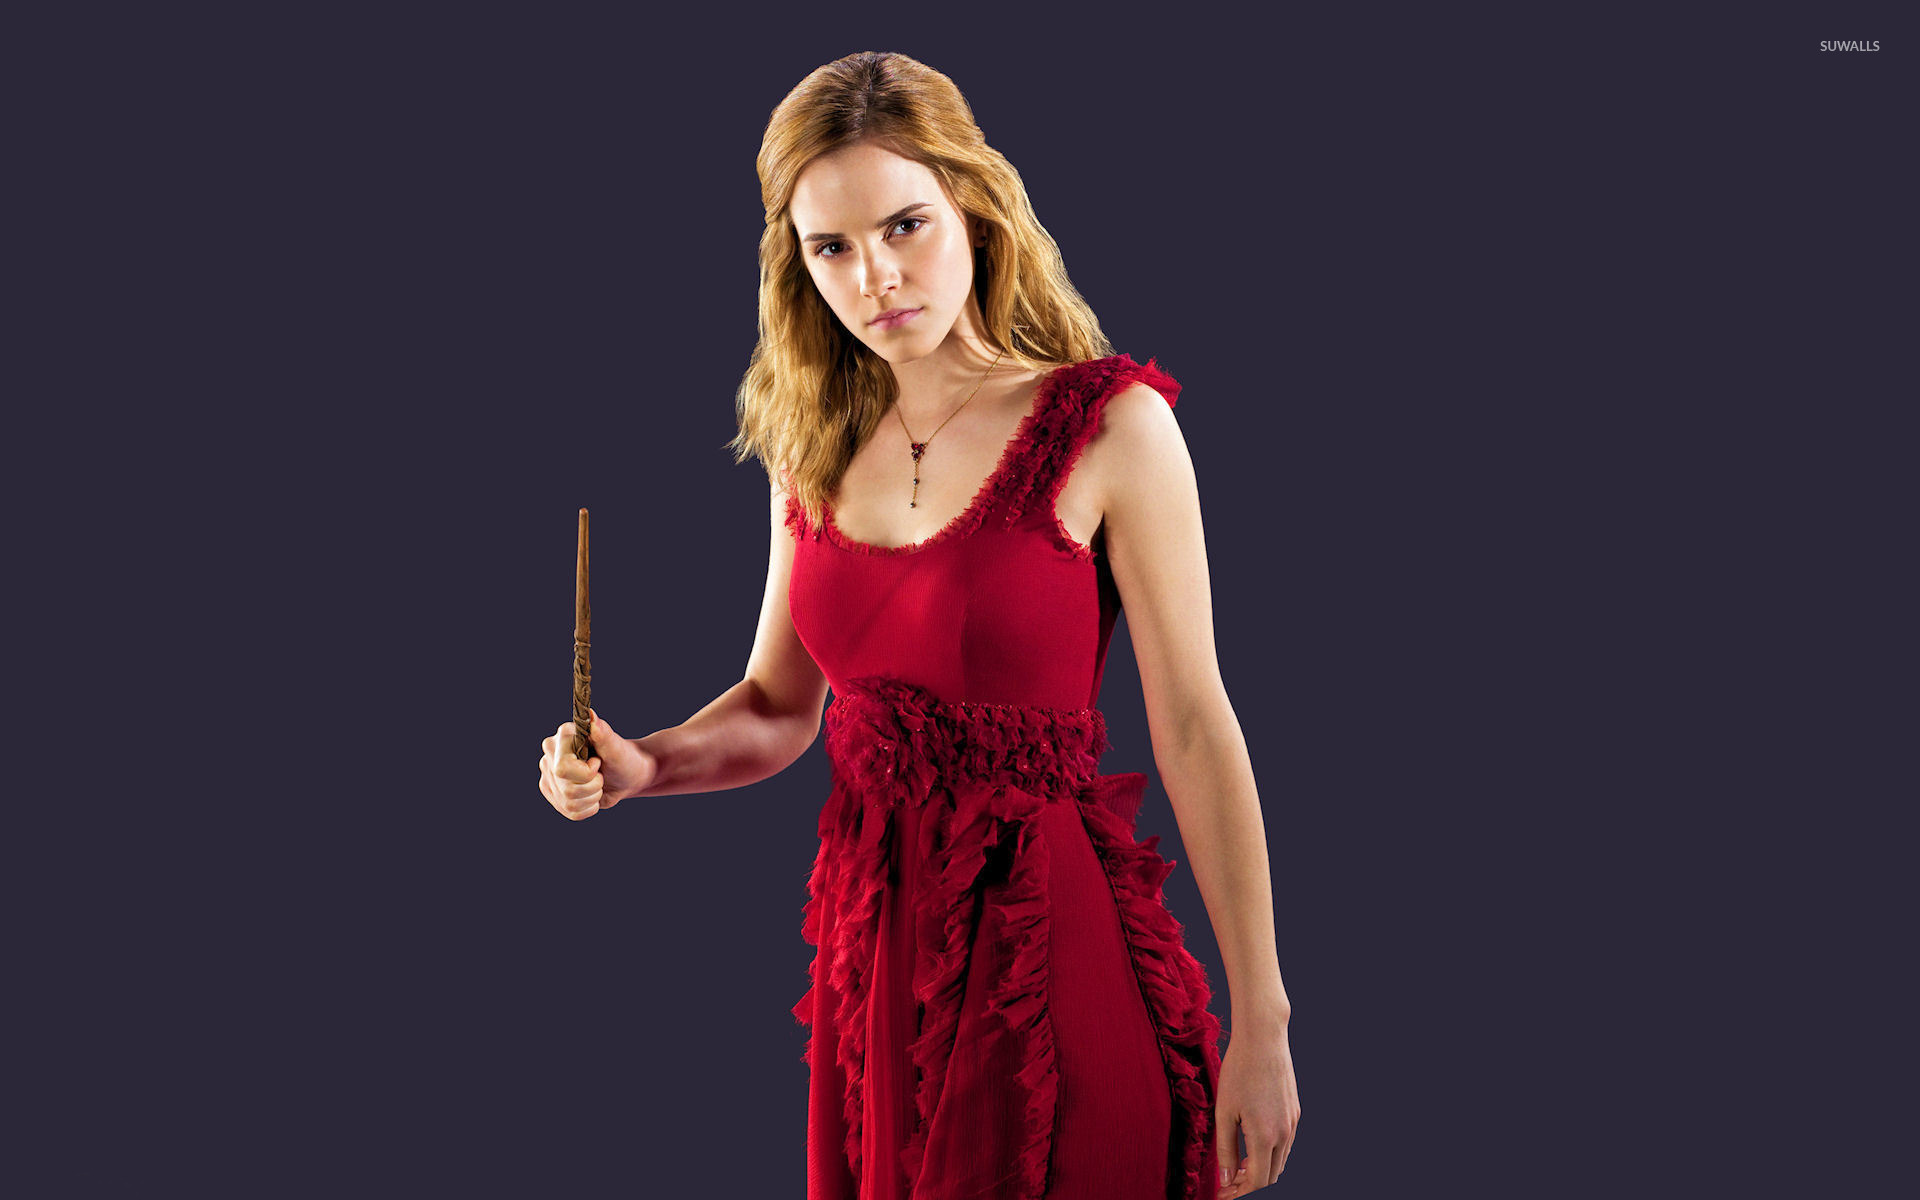 Hermione granger harry potter wallpaper movie wallpapers 41032 - Harry potter movies hermione granger ...